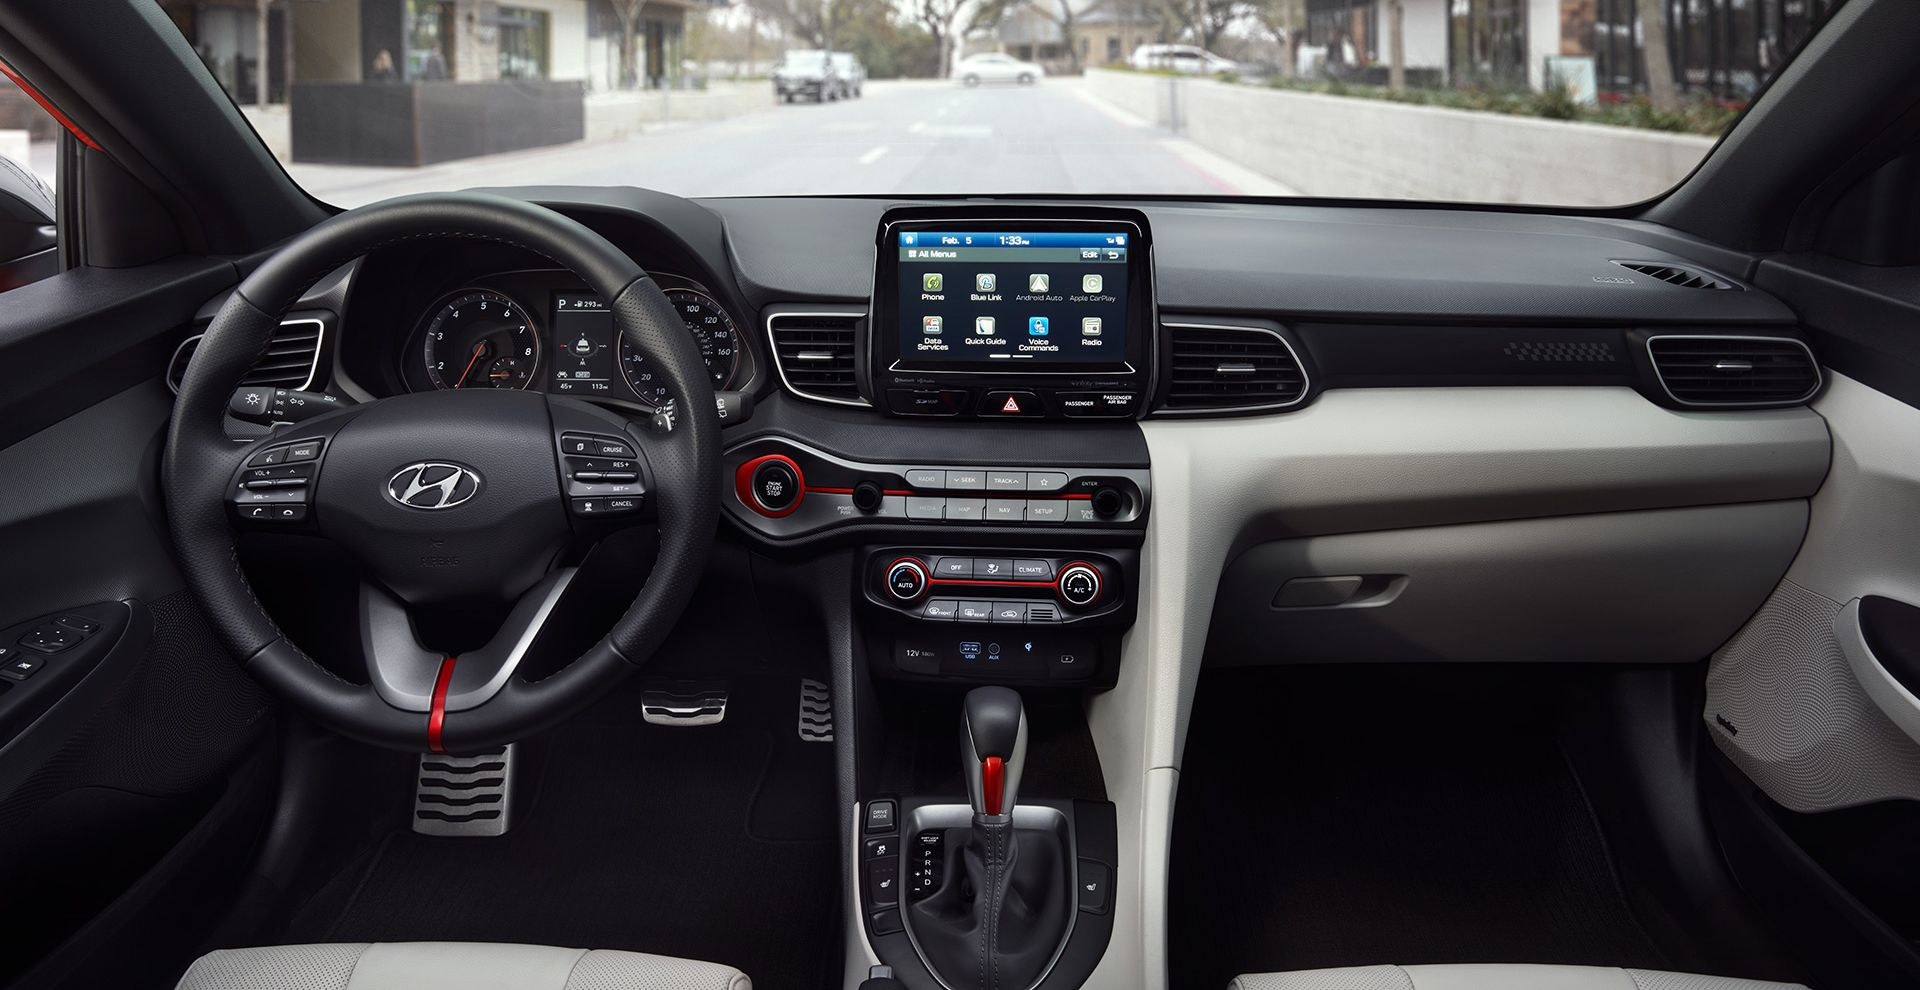 Interior of the 2019 Veloster Turbo